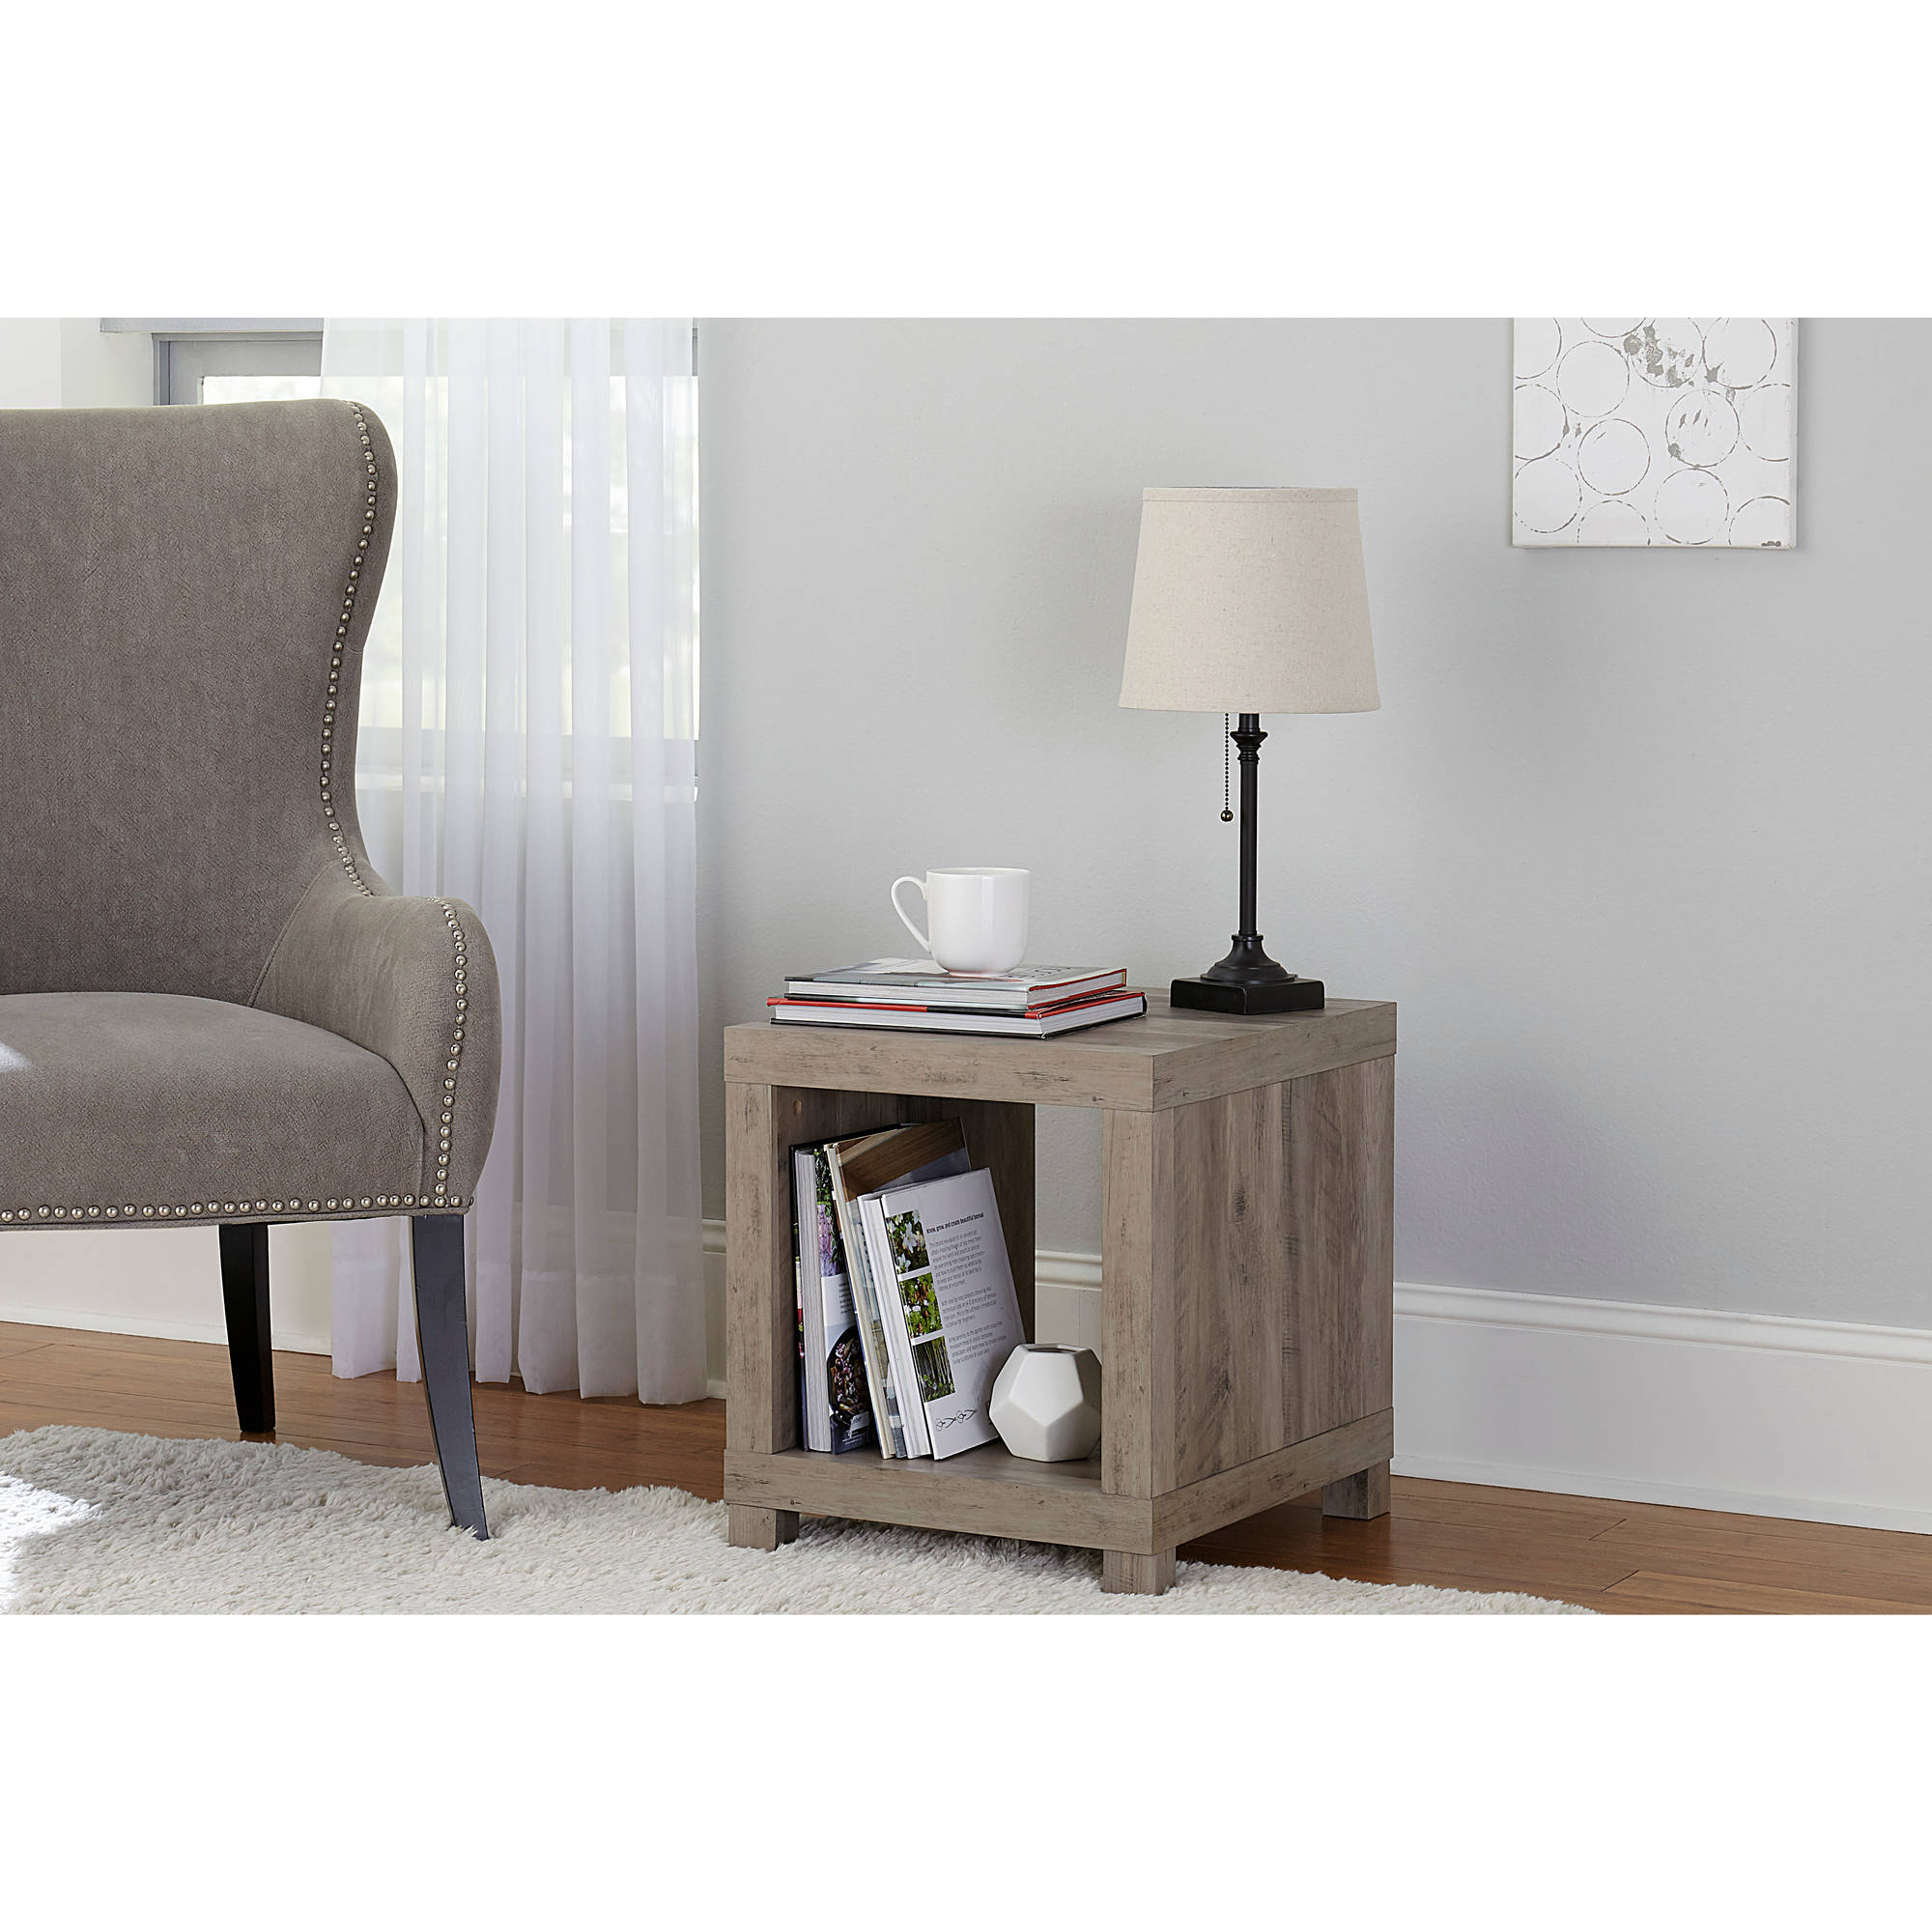 better homes and gardens accent table rustic gray room essentials metal patio pineapple lights small couch drum parts heavy umbrella base stands home goods runners clear lucite